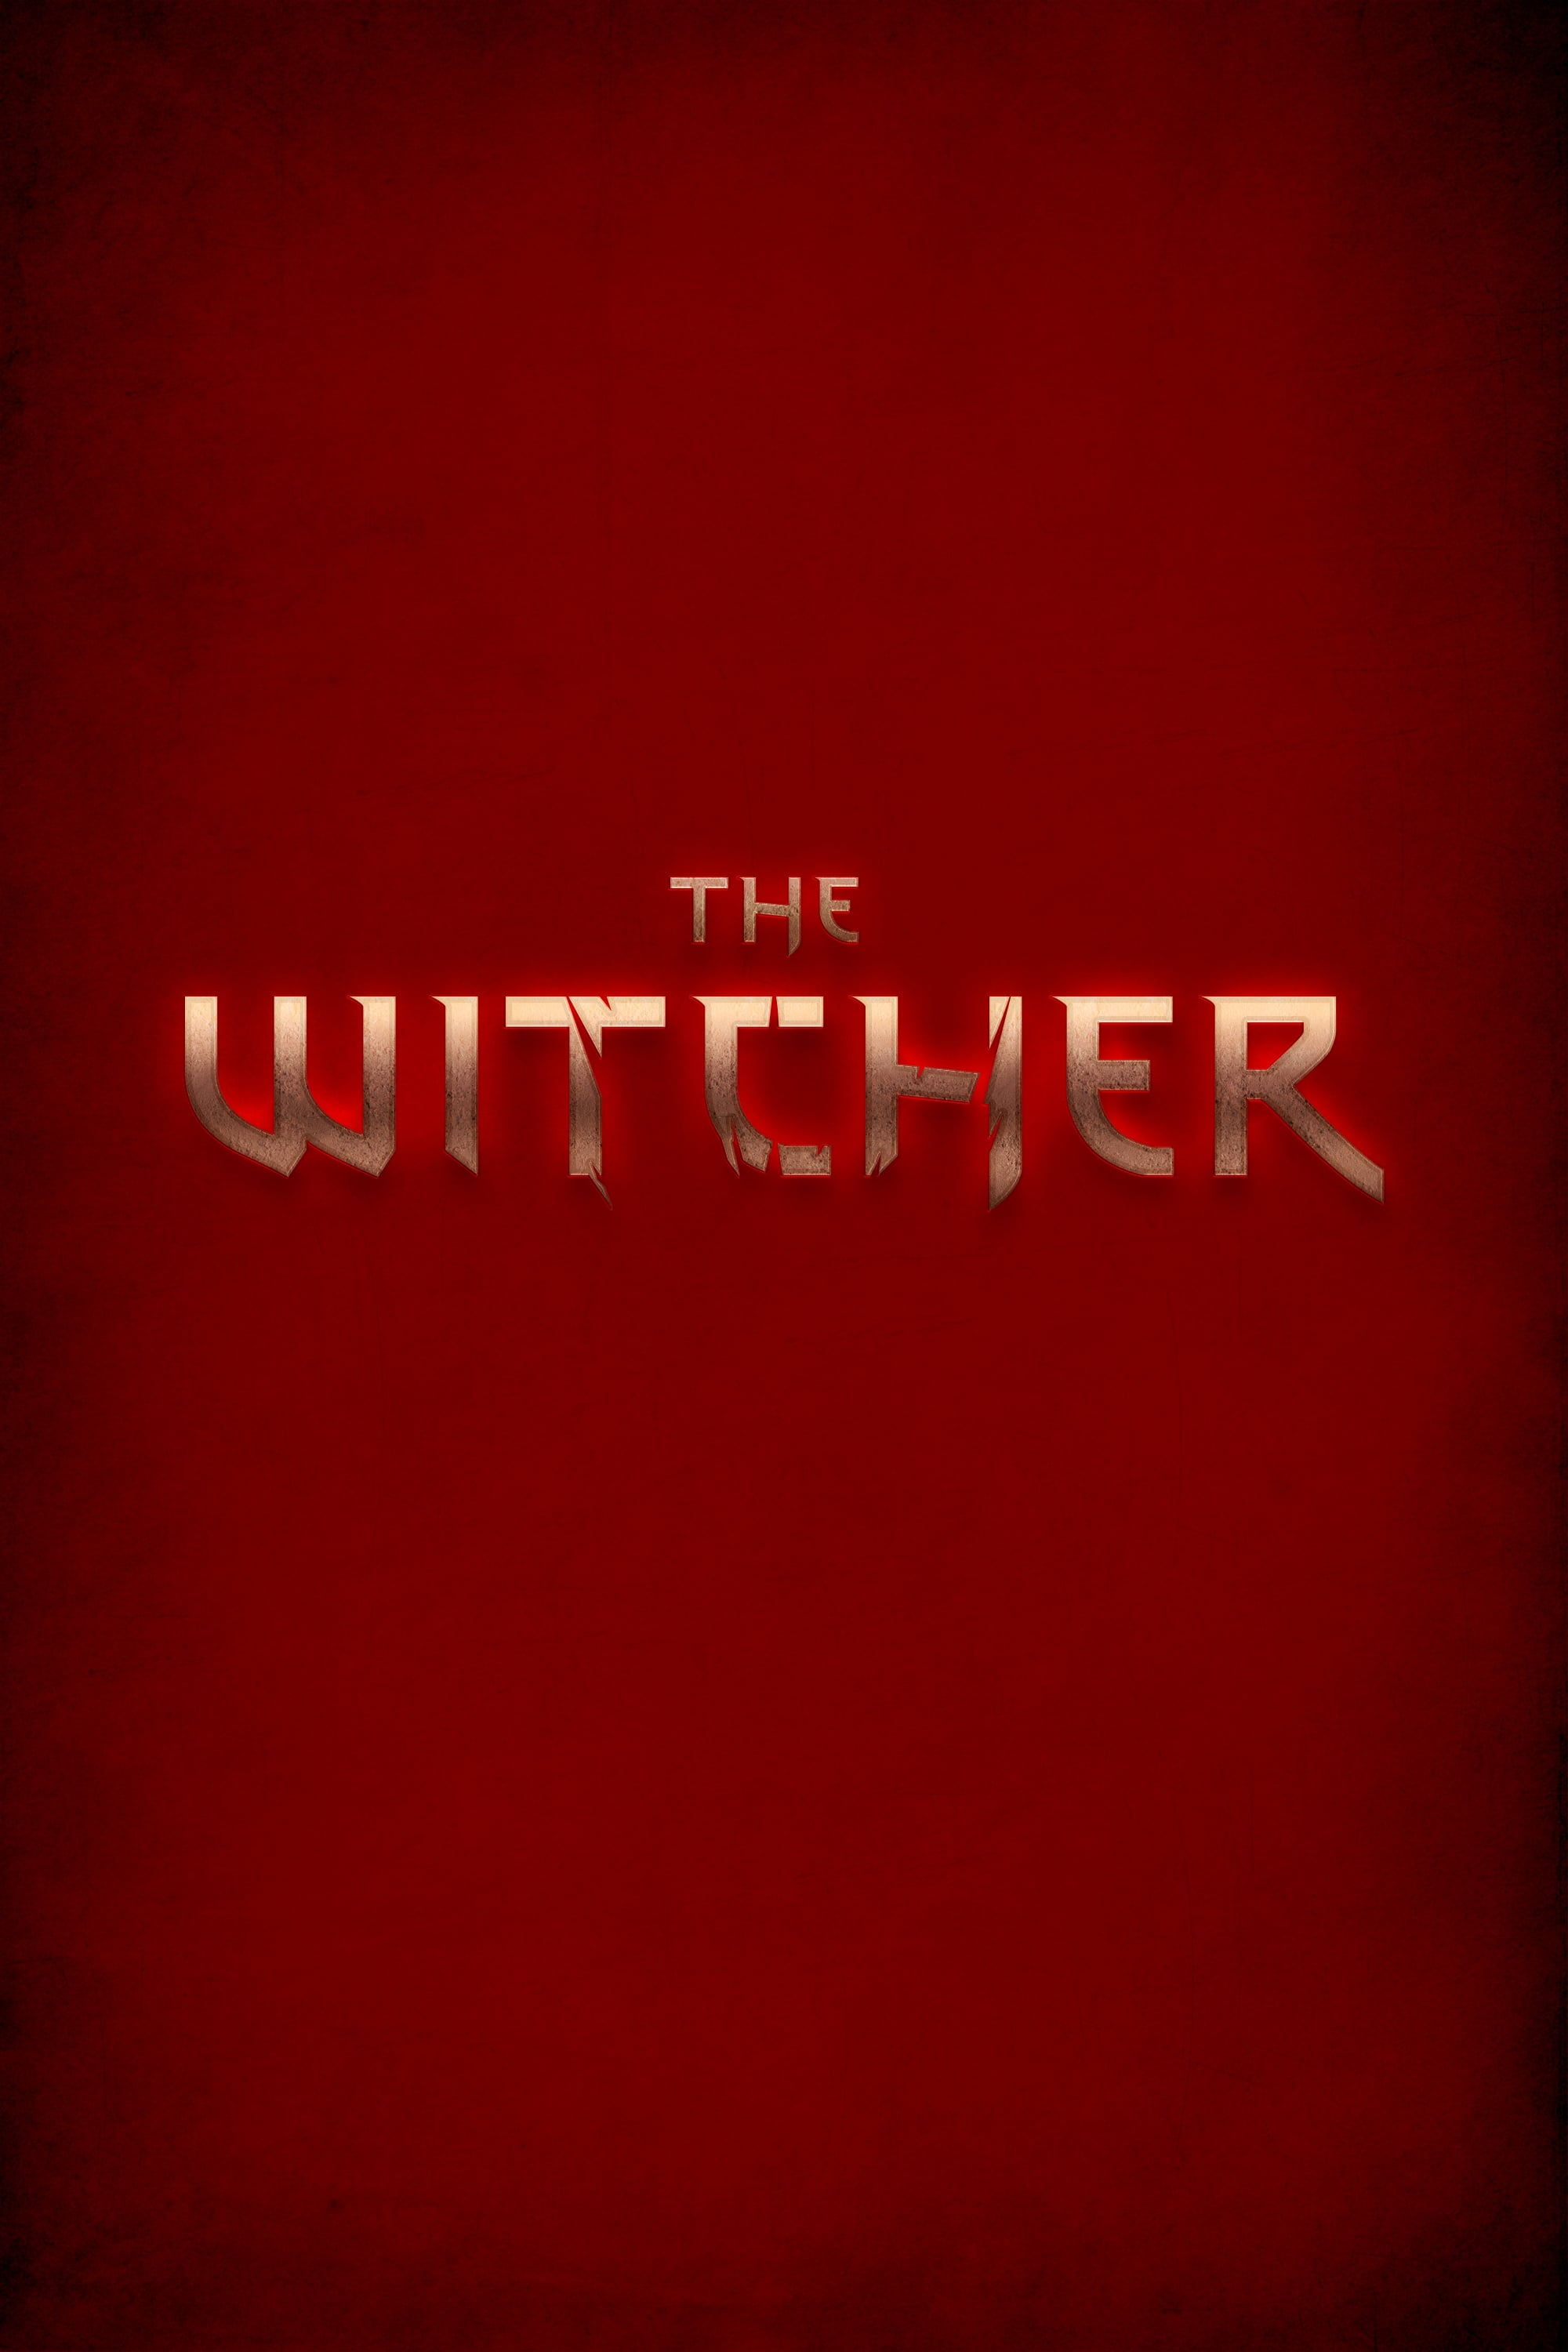 The Witcher series tv complet